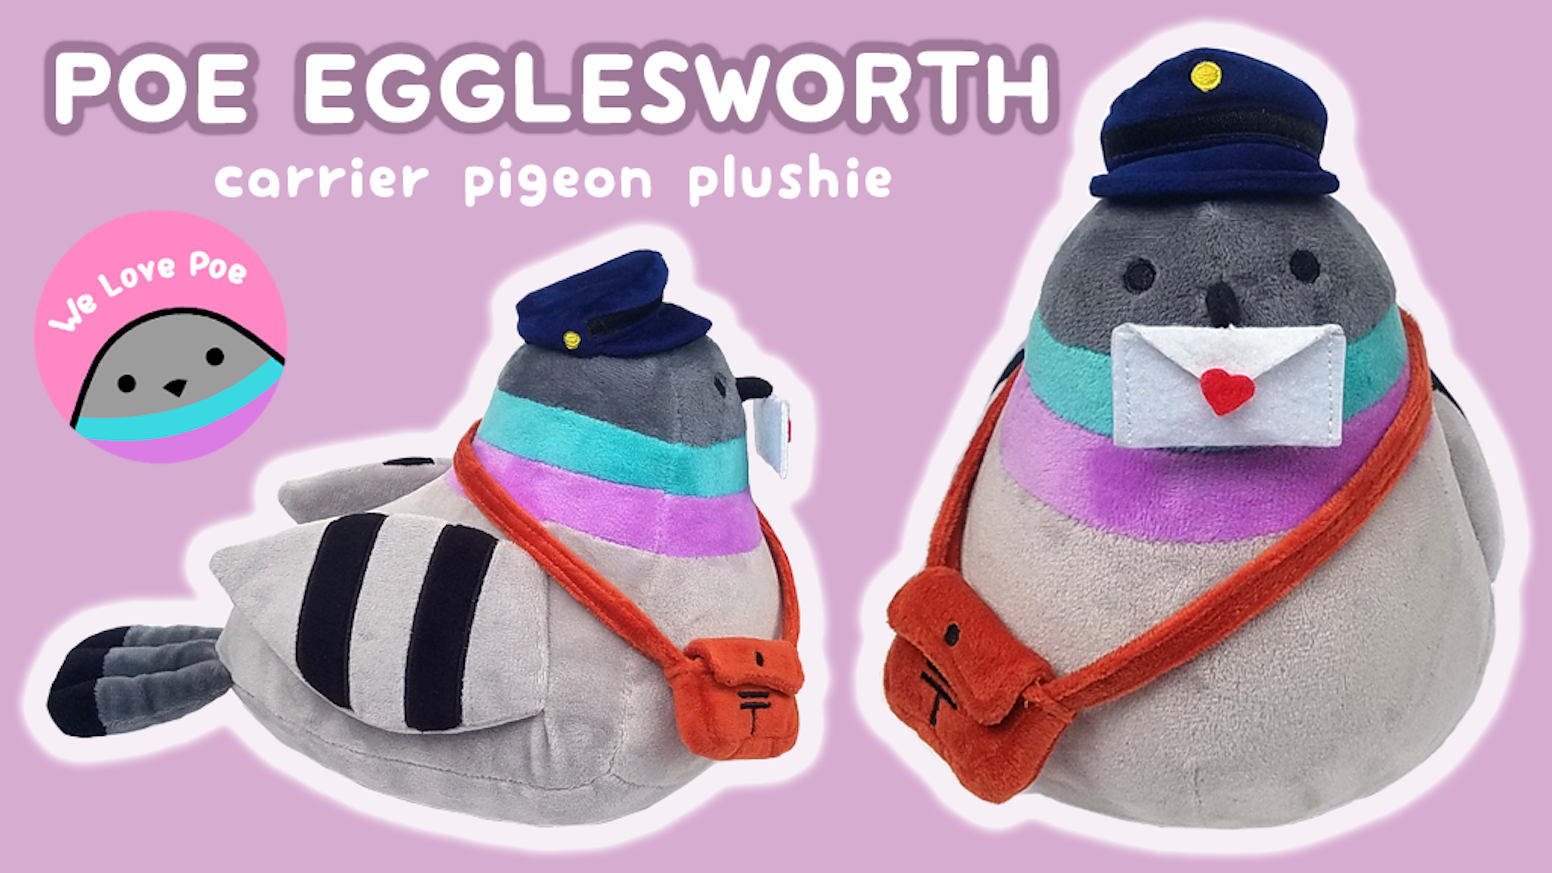 Adorable carrier pigeon plushie with delivery bag and a small letter! With enamel pin add-ons and stretch goals